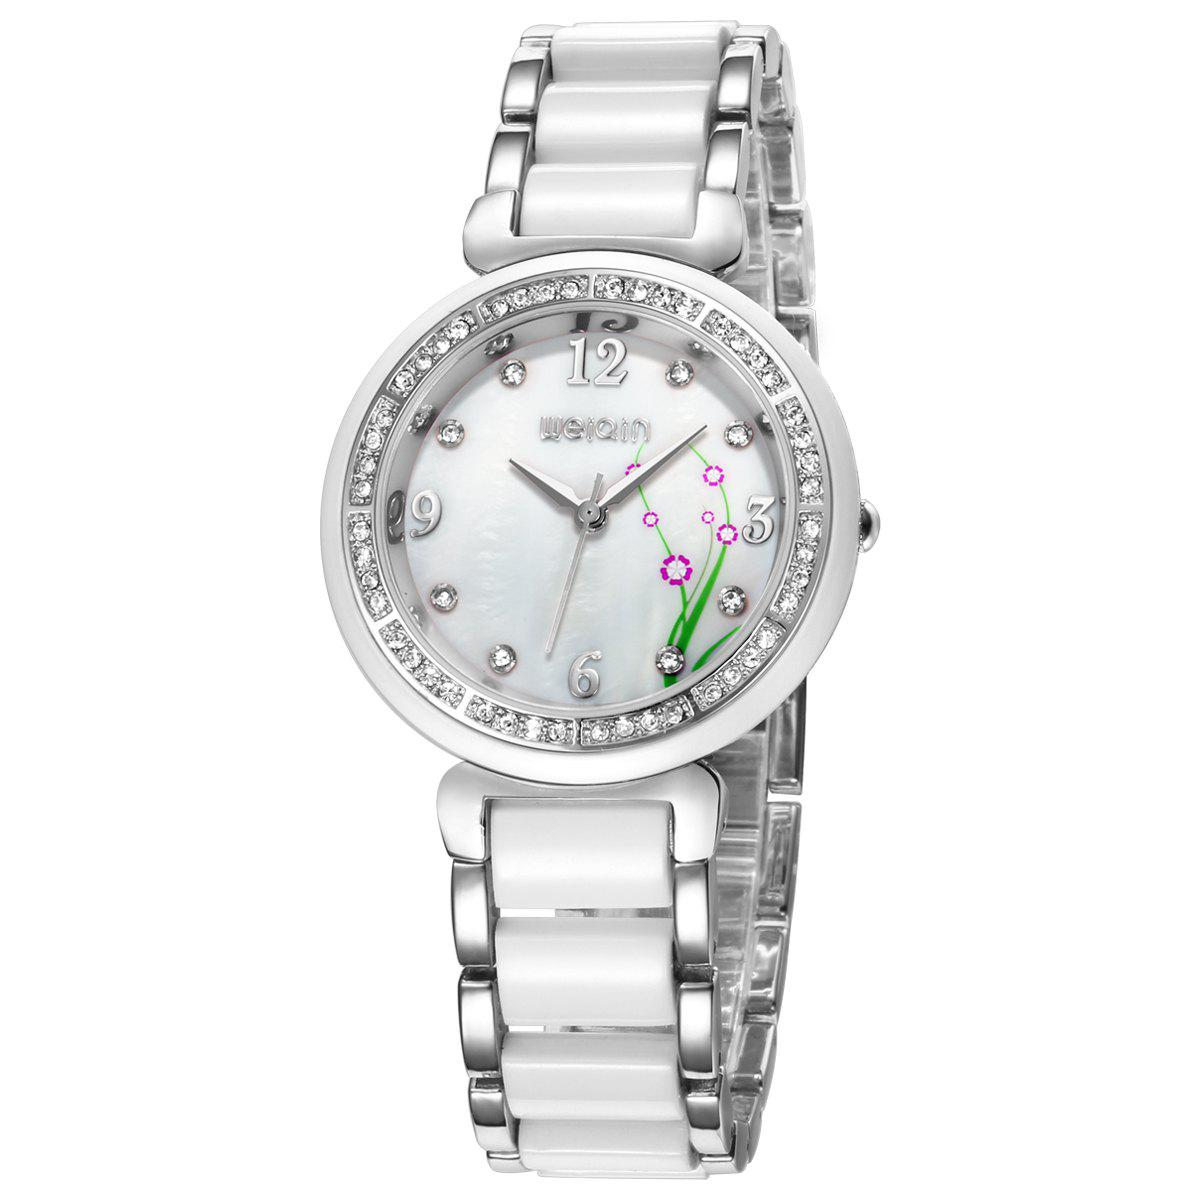 WeiQin 1096 Fashion Rhinestone Scale Quartz Watch for Female - SILVER